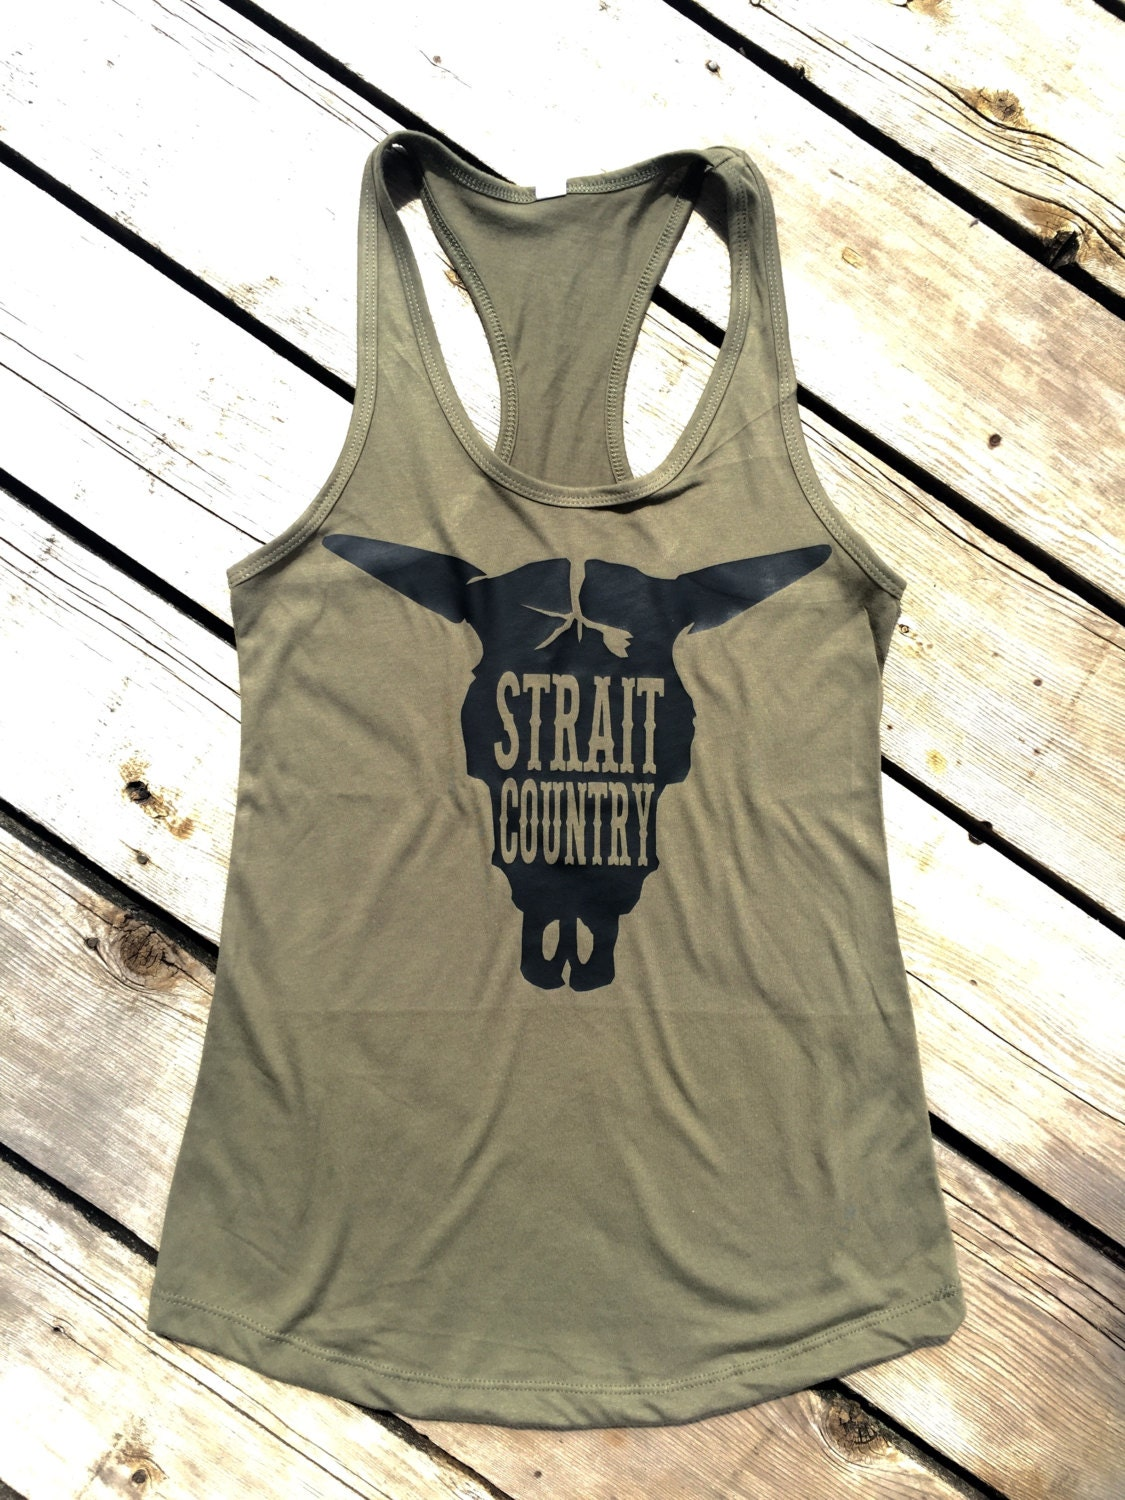 Strait Country Tank Top Women S Country Lifestyle Apparel